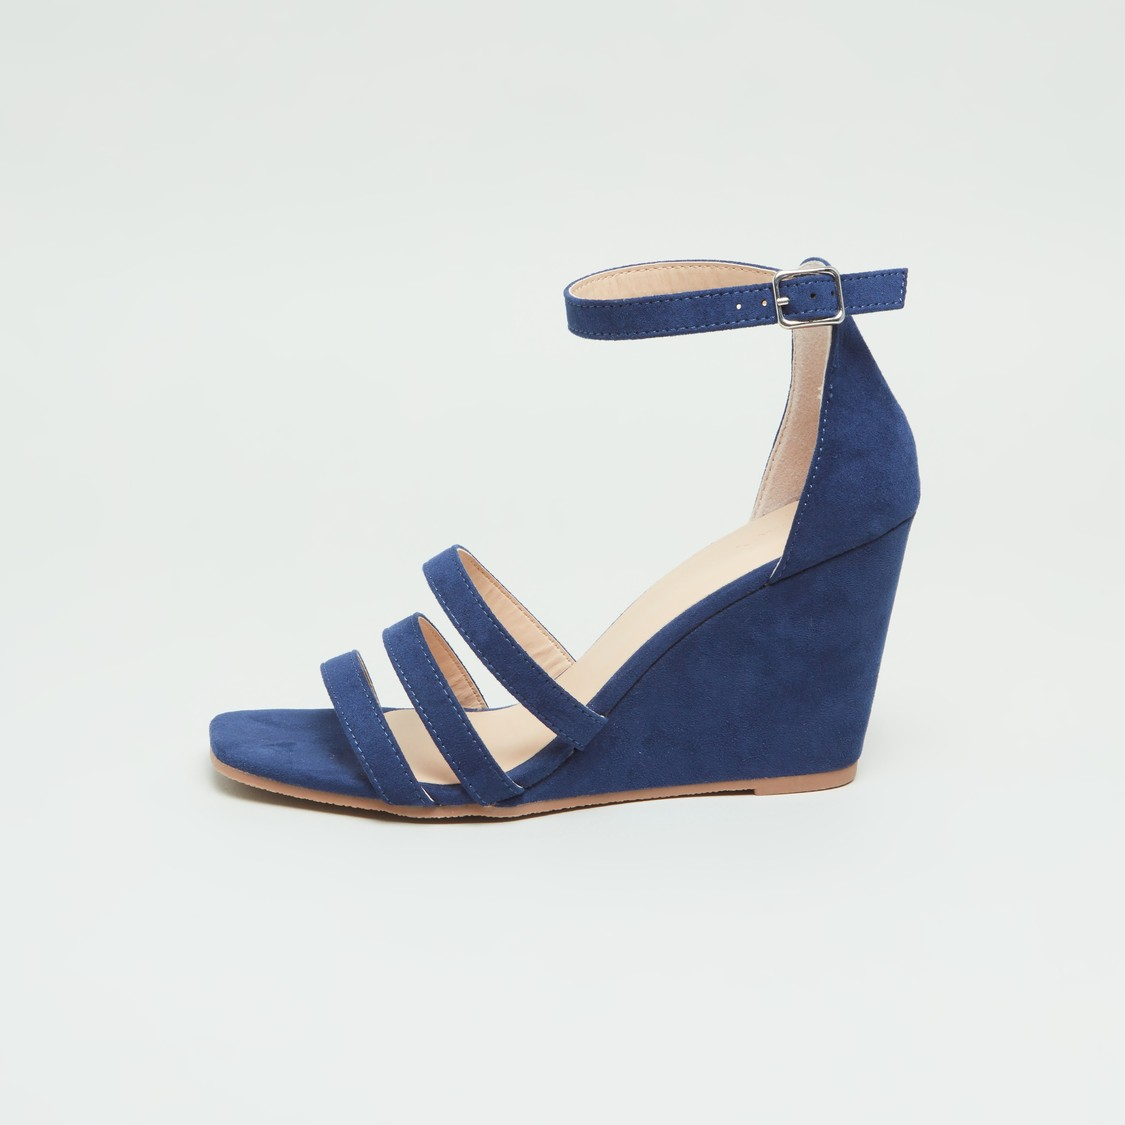 Ankle Strap Sandals with Wedge Heels